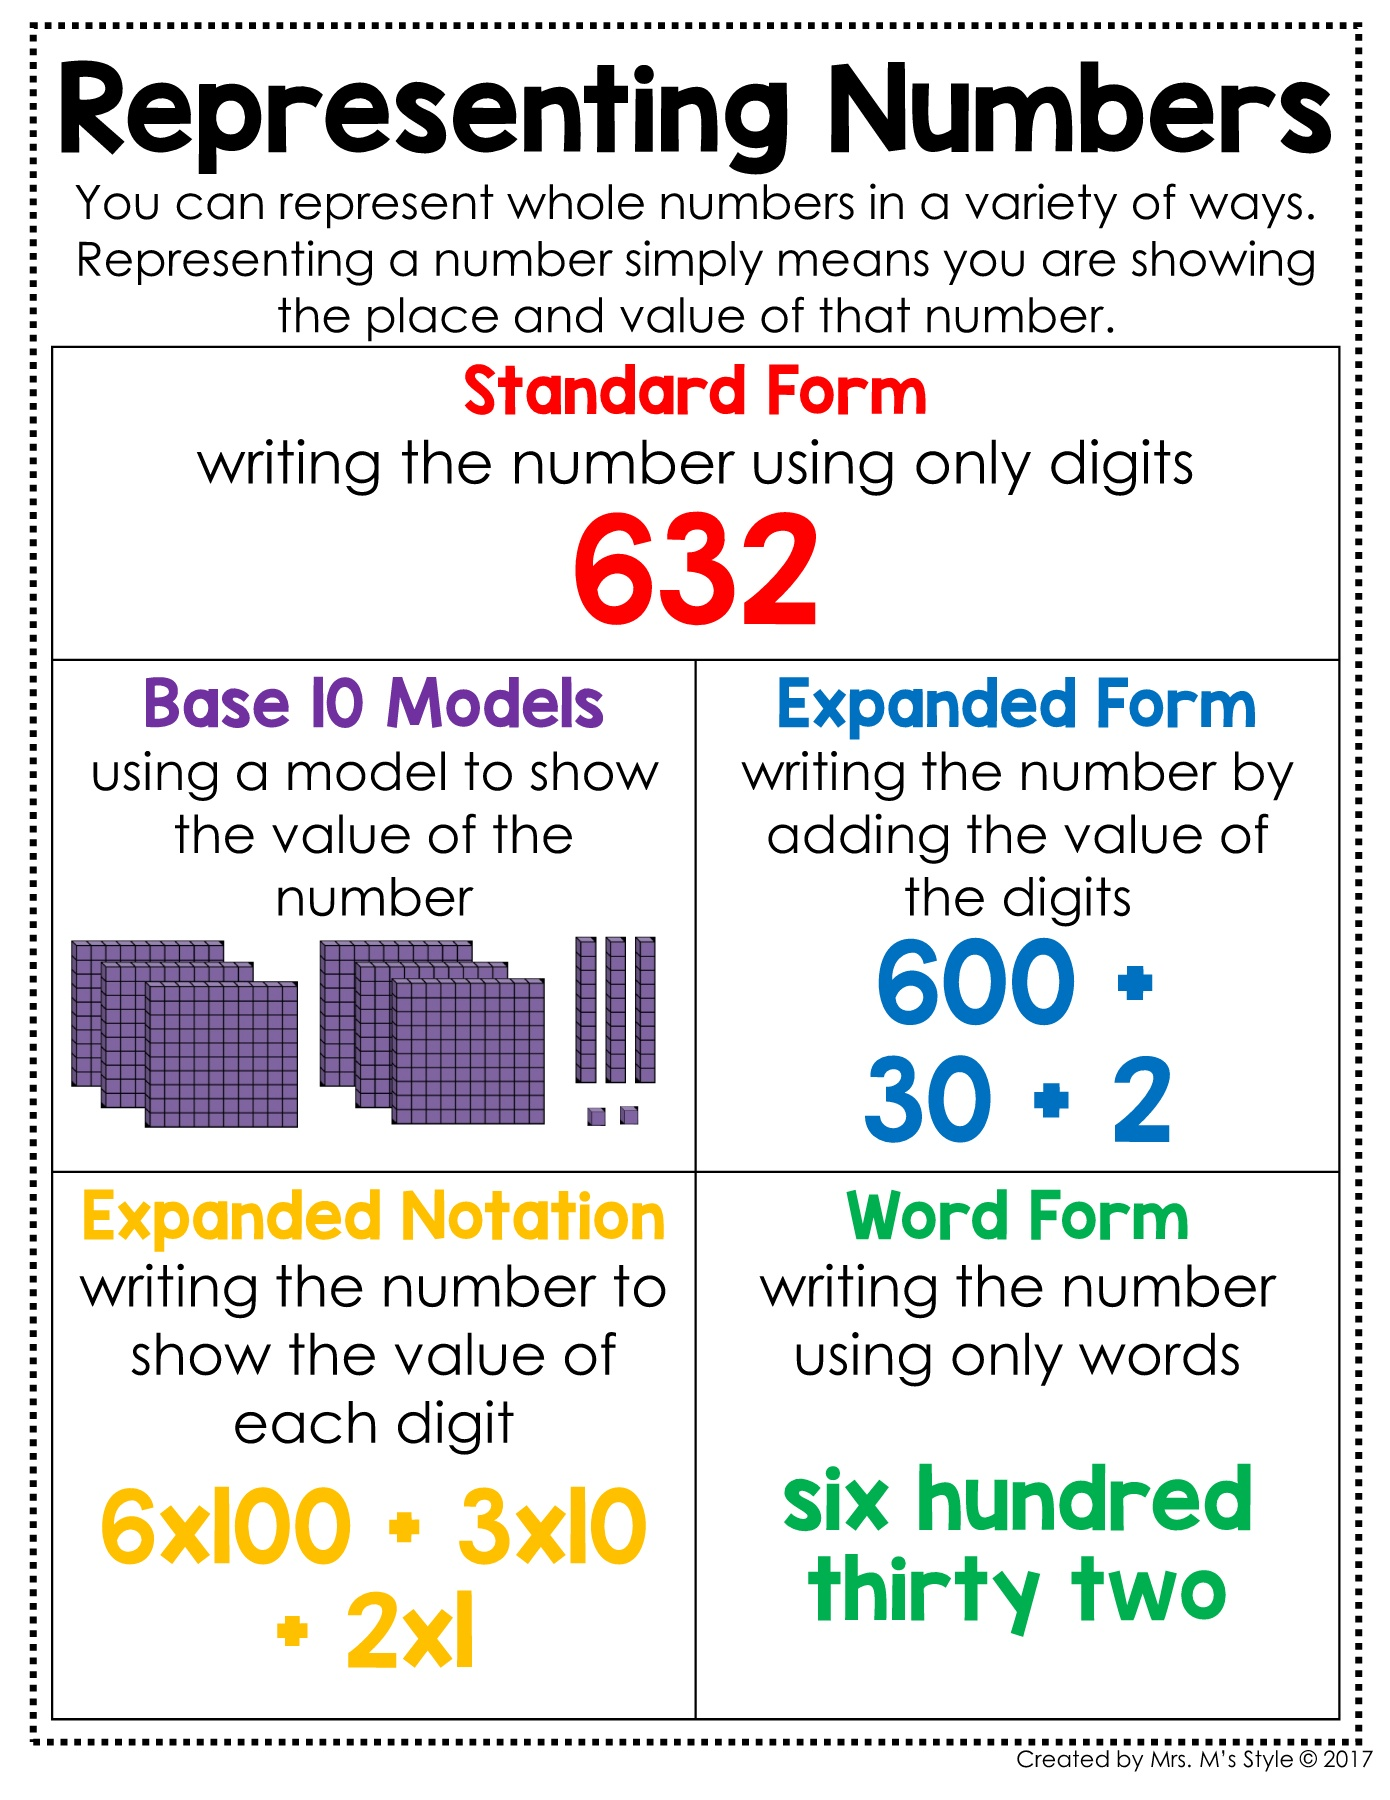 4th Grade Math Anchor Charts - Color - FULL PAGE-Flip eBook Pages 1 - 50   AnyFlip   AnyFlip